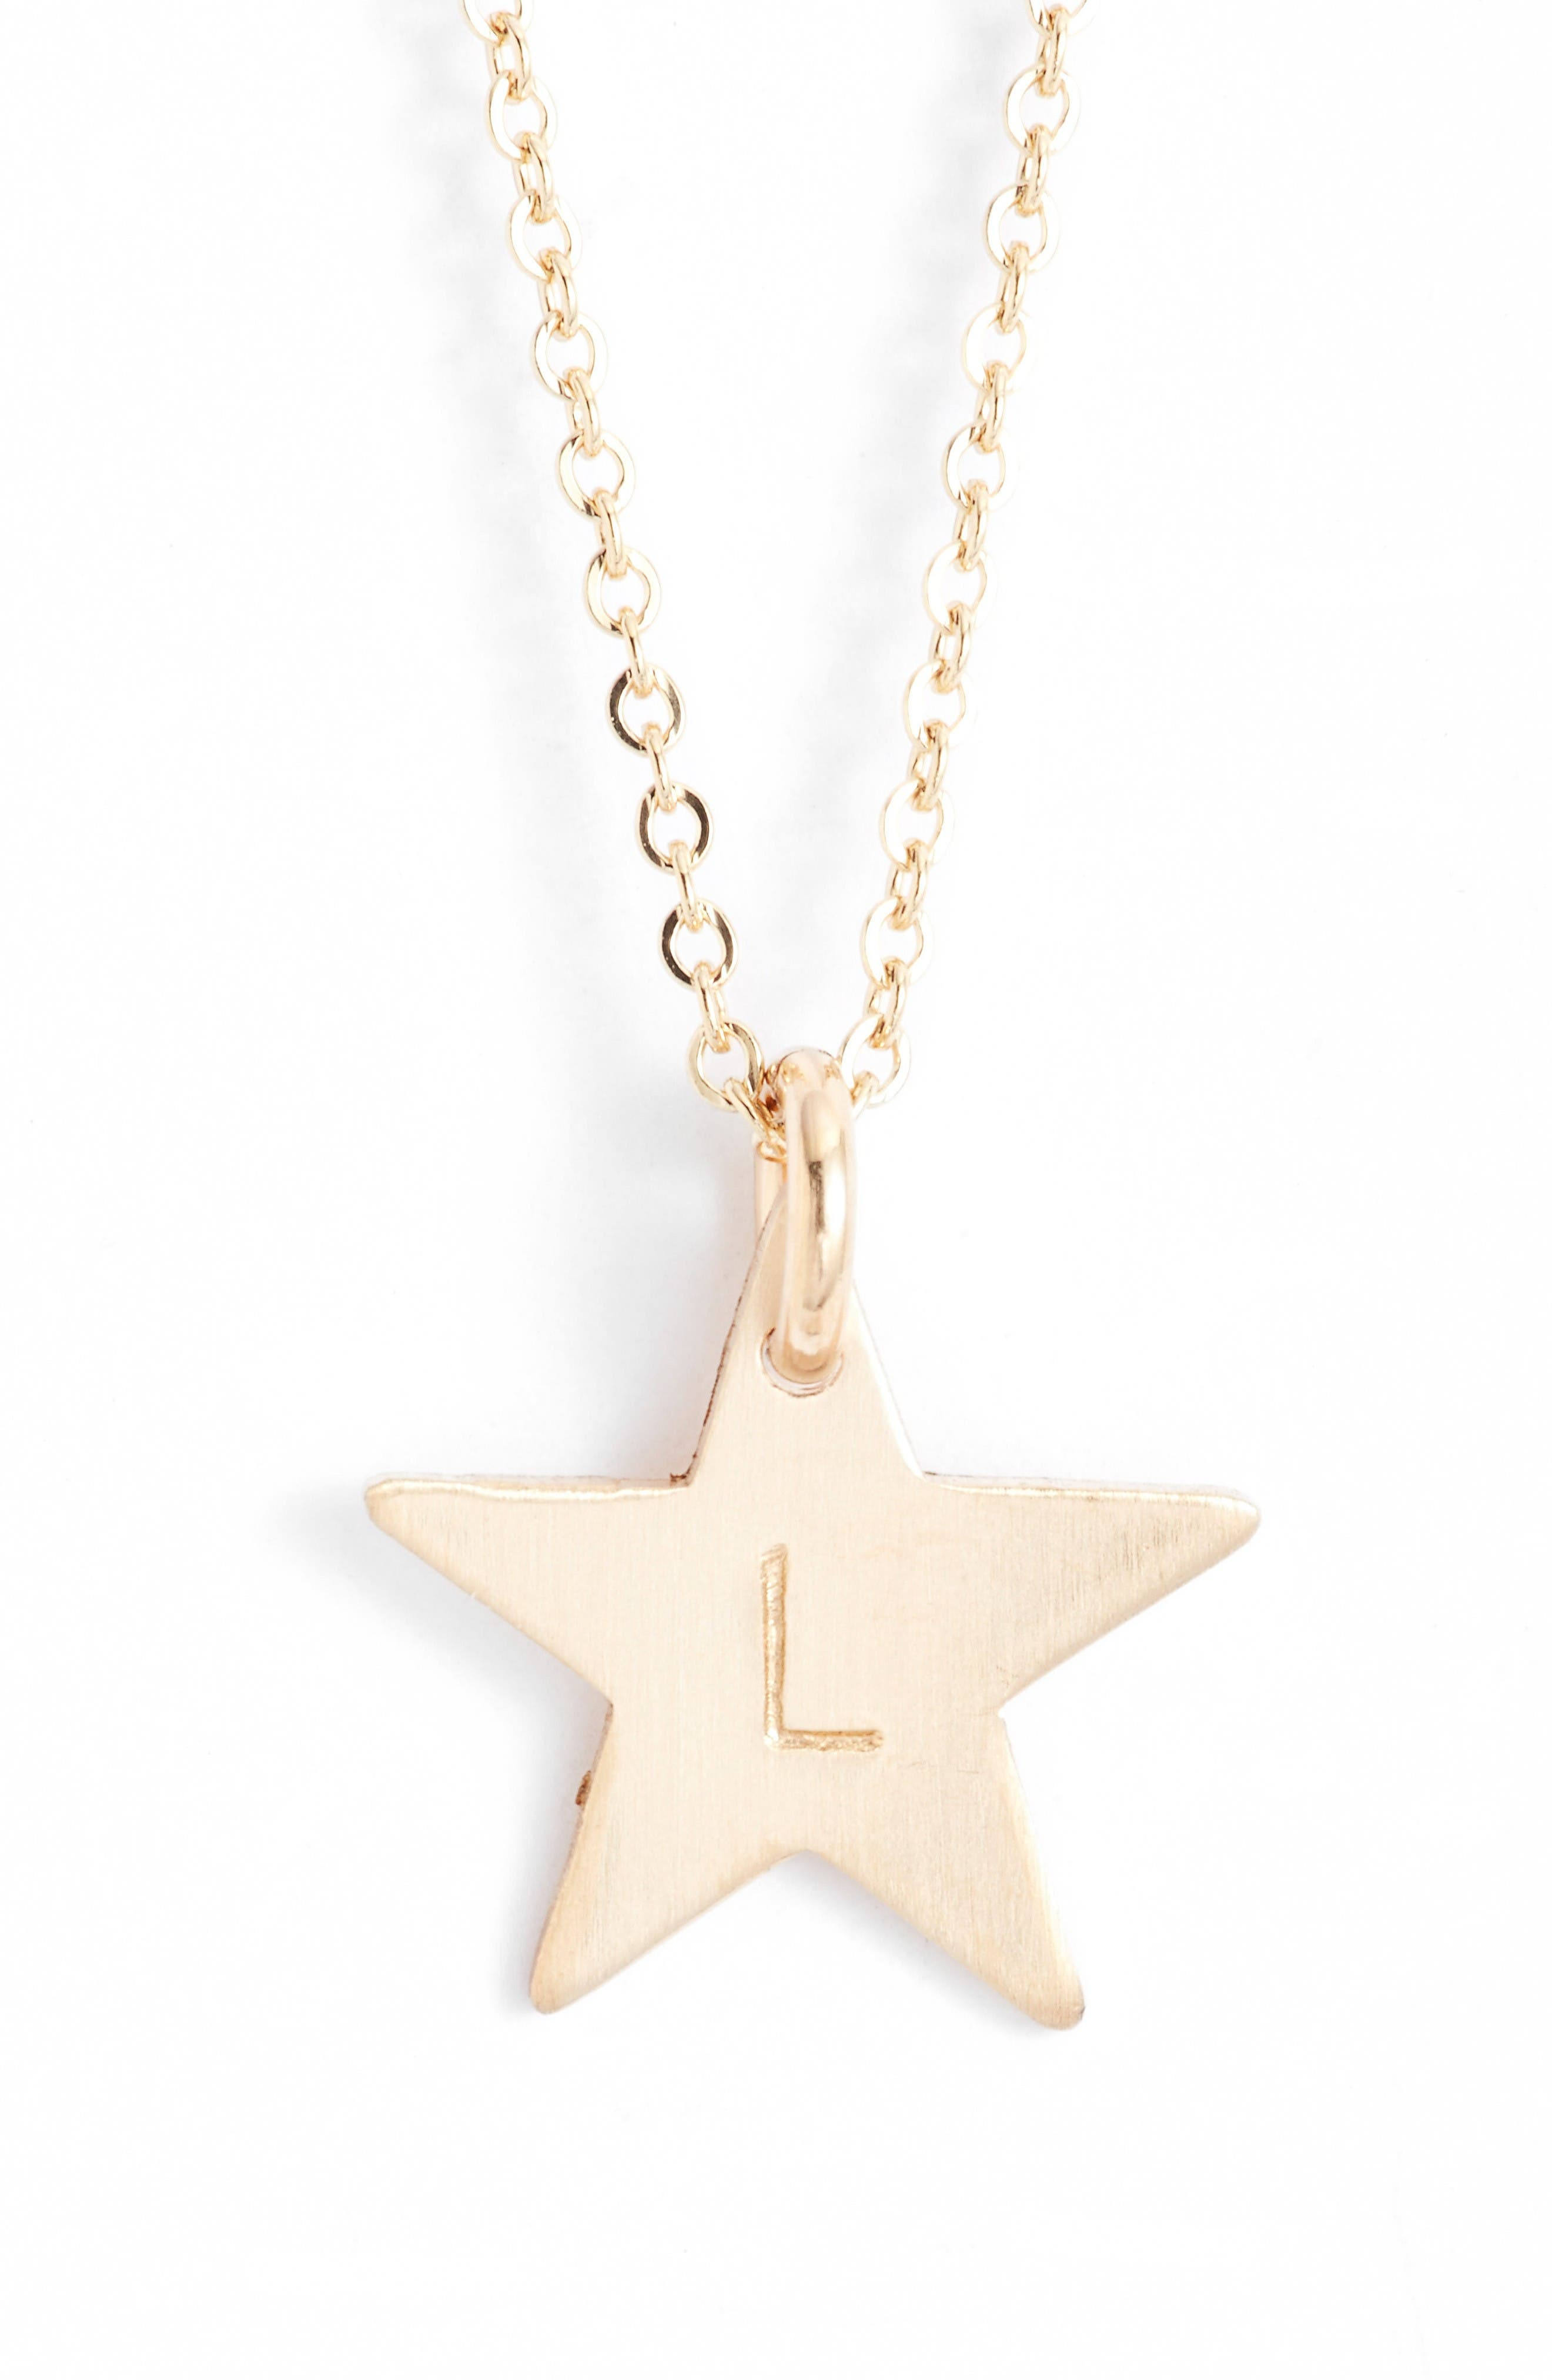 Alternate Image 1 Selected - Nashelle 14k-Gold Fill Initial Mini Star Pendant Necklace